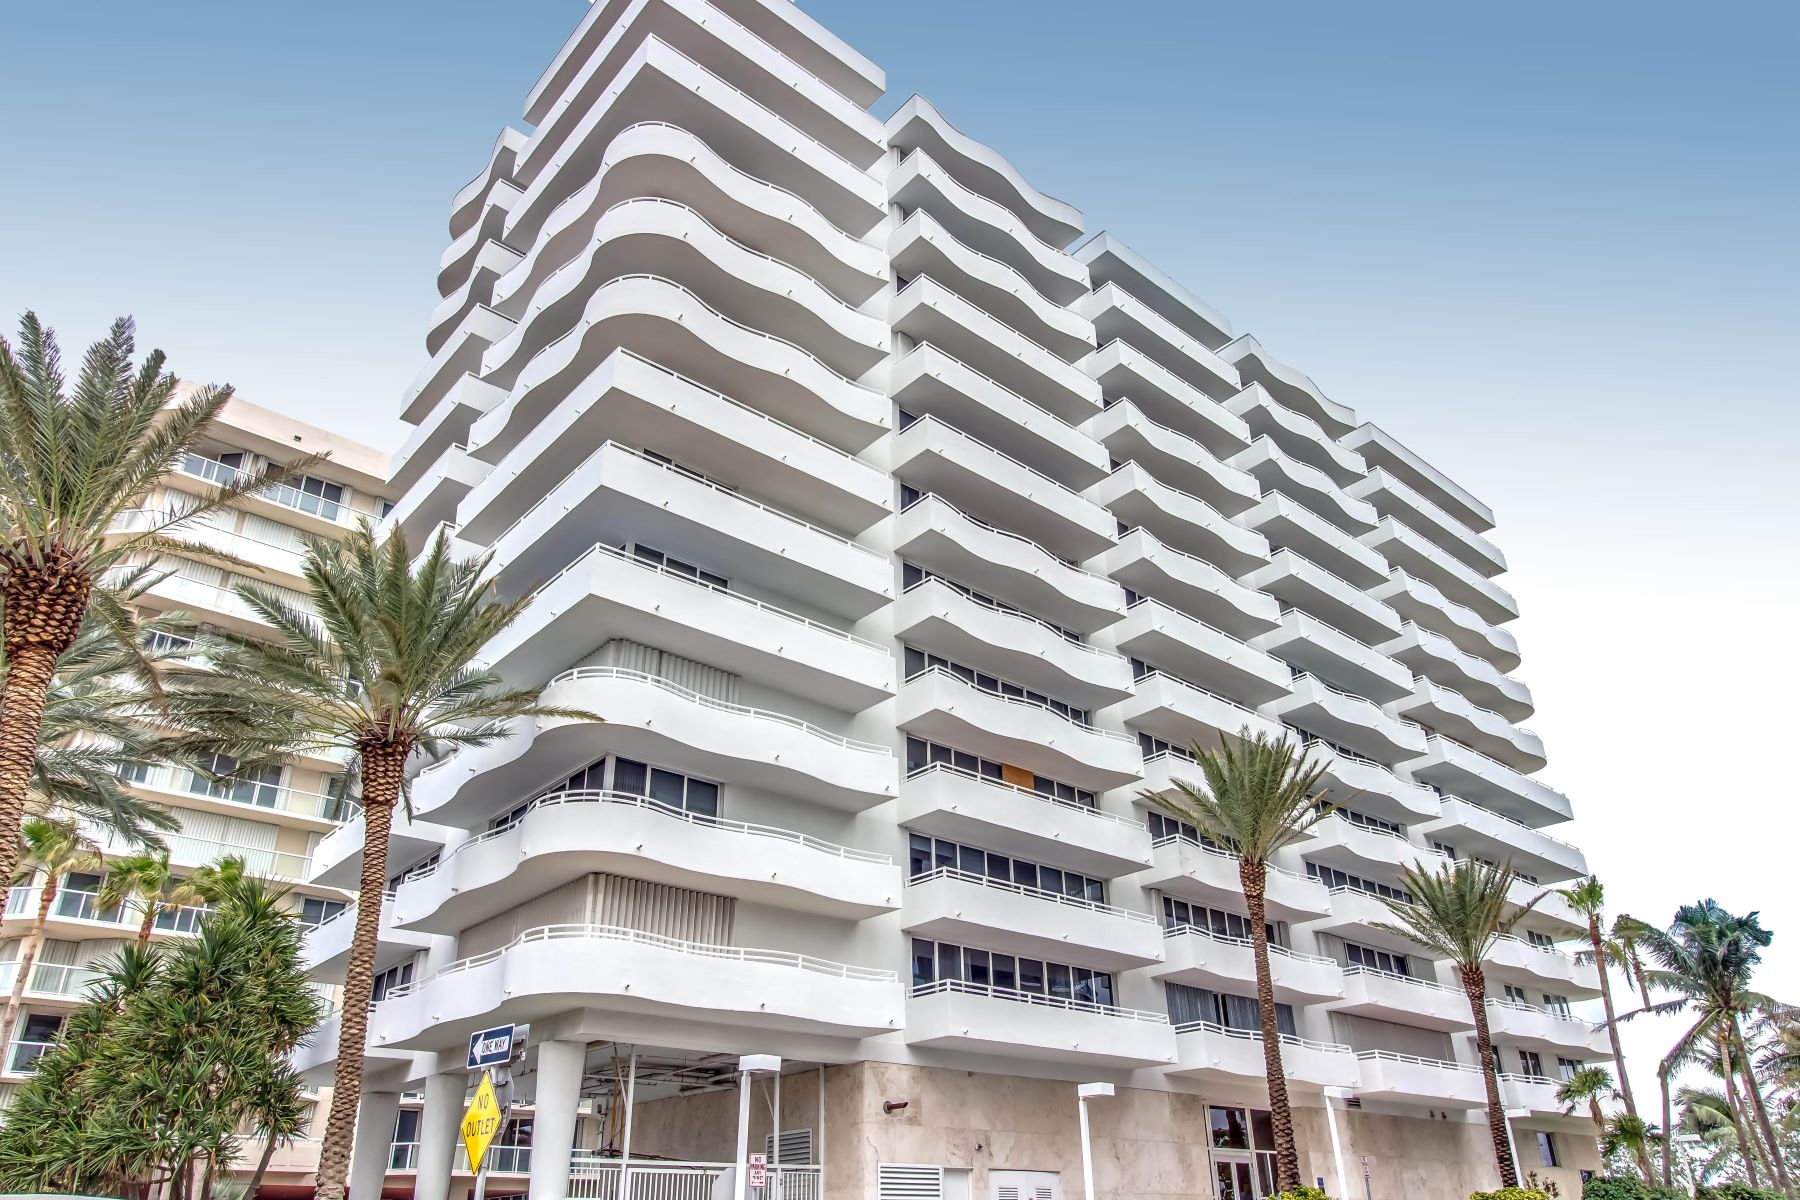 Condominium for Rent at 8911 Collins Ave 8911 Collins Ave 202 Surfside, Florida 33154 United States